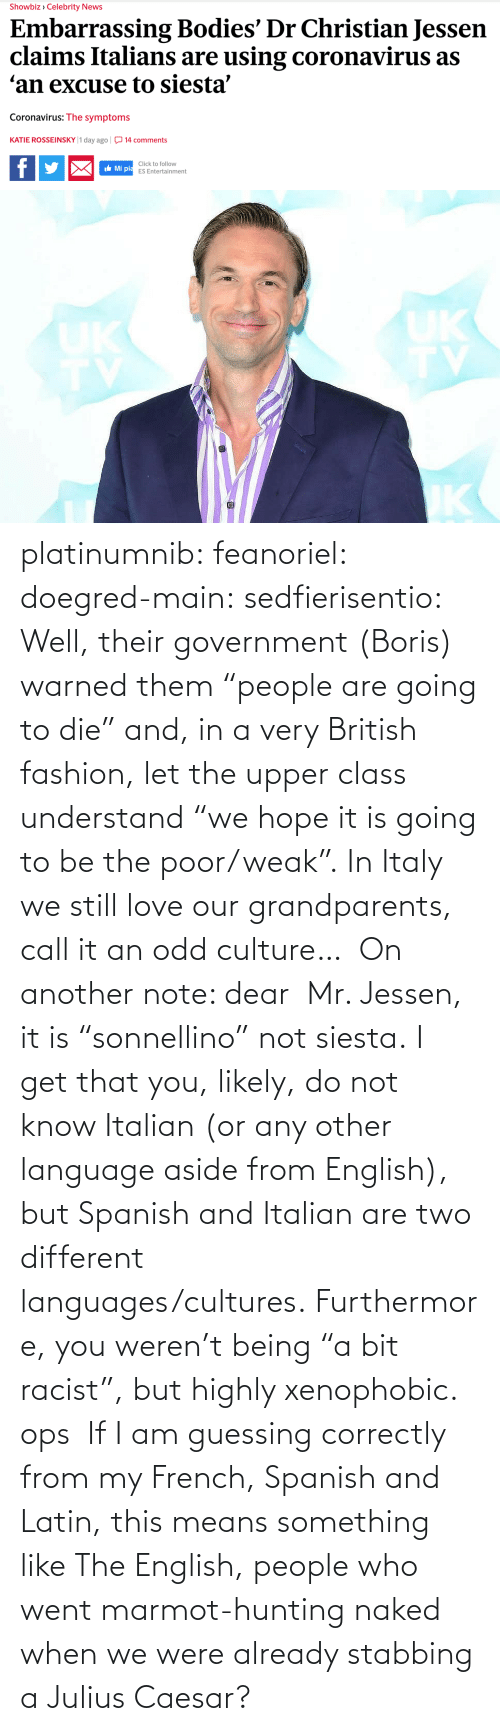 "Naked: platinumnib:  feanoriel: doegred-main:  sedfierisentio:  Well, their government (Boris) warned them ""people are going to die"" and, in a very British fashion, let the upper class understand ""we hope it is going to be the poor/weak"". In Italy we still love our grandparents, call it an odd culture…  On another note: dear  Mr. Jessen, it is ""sonnellino"" not siesta. I get that you, likely, do not know Italian (or any other language aside from English), but Spanish and Italian are two different languages/cultures. Furthermore, you weren't being ""a bit racist"", but highly xenophobic.   ops   If I am guessing correctly from my French, Spanish and Latin, this means something like The English, people who went marmot-hunting naked when we were already stabbing a Julius Caesar?"